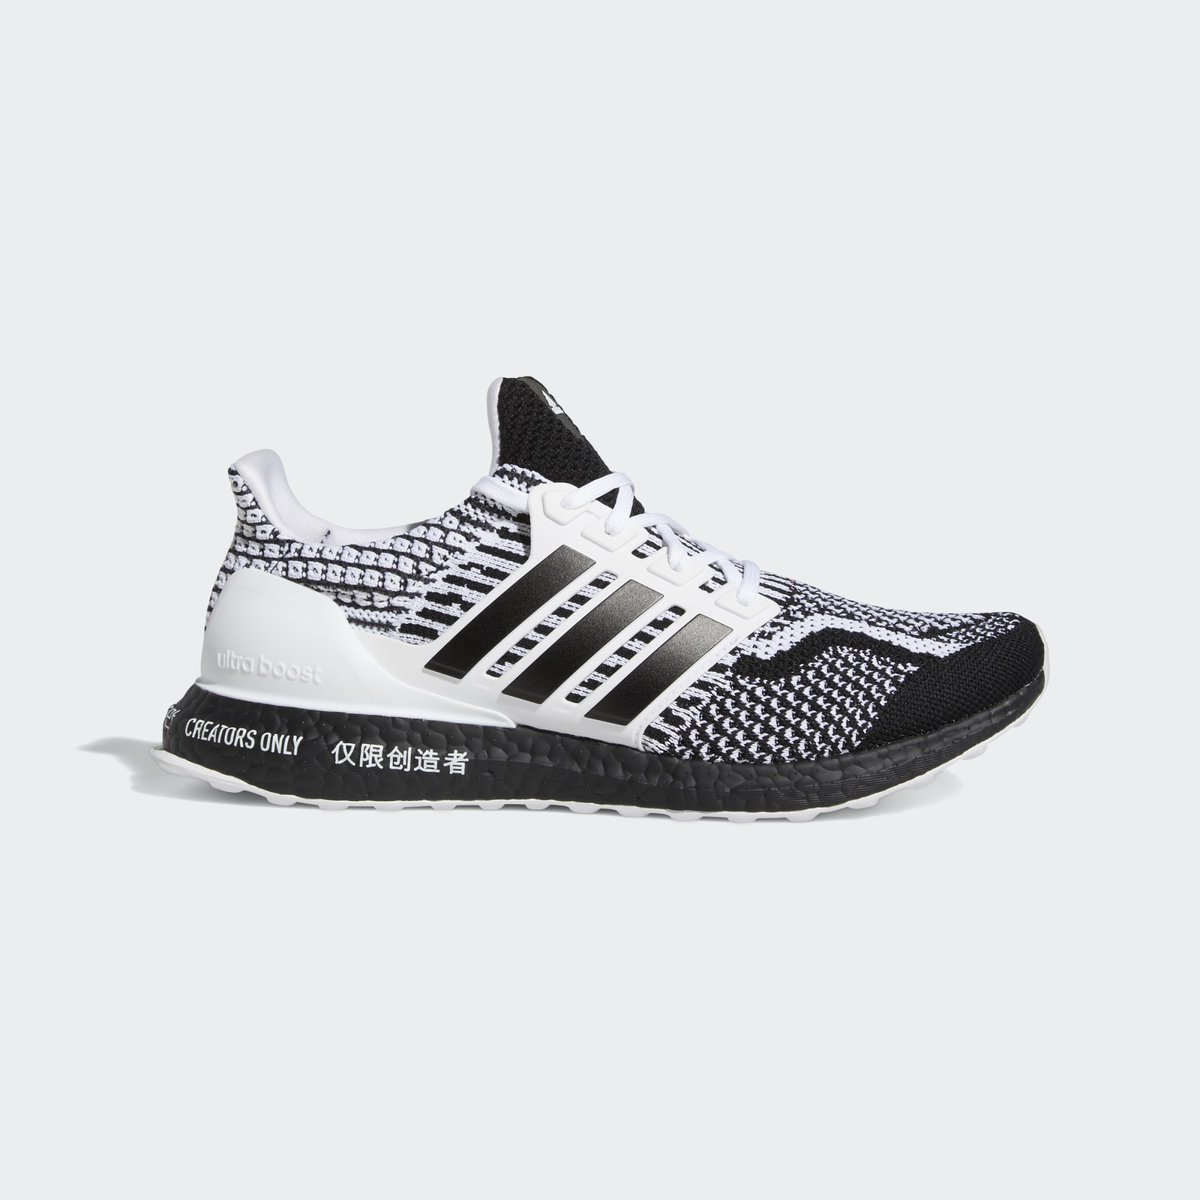 Now available on @footlocker. adidas Ultra Boost 5.0 Creators Only. —